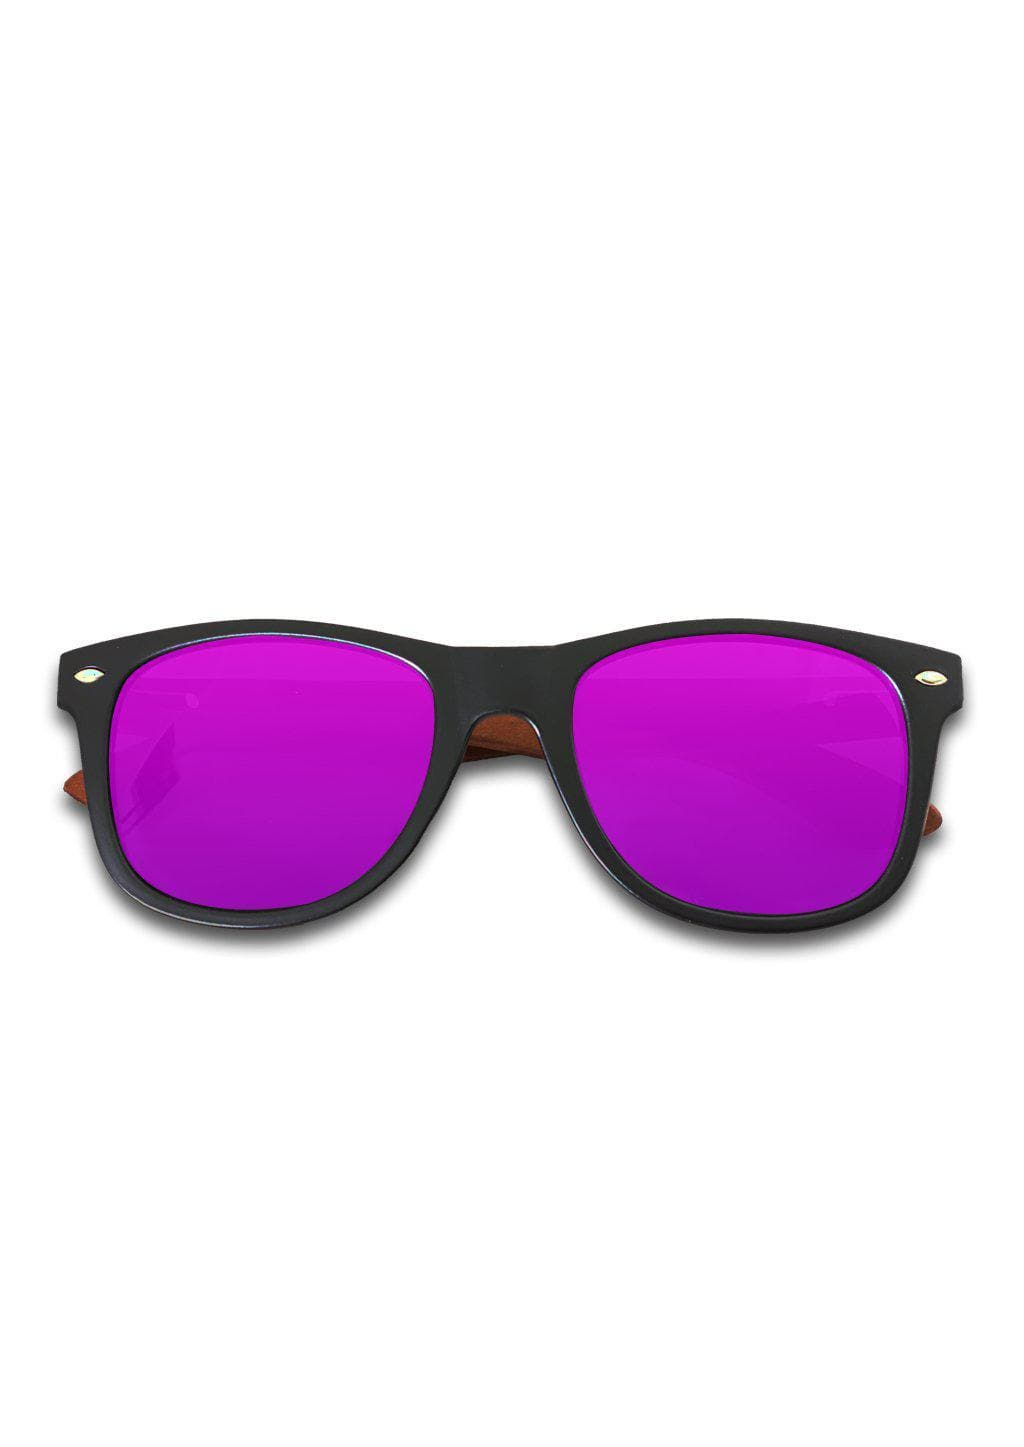 Eyewood Wayfarer - Amethyst - Our classic wooden sunglasses with purple mirror lenses.